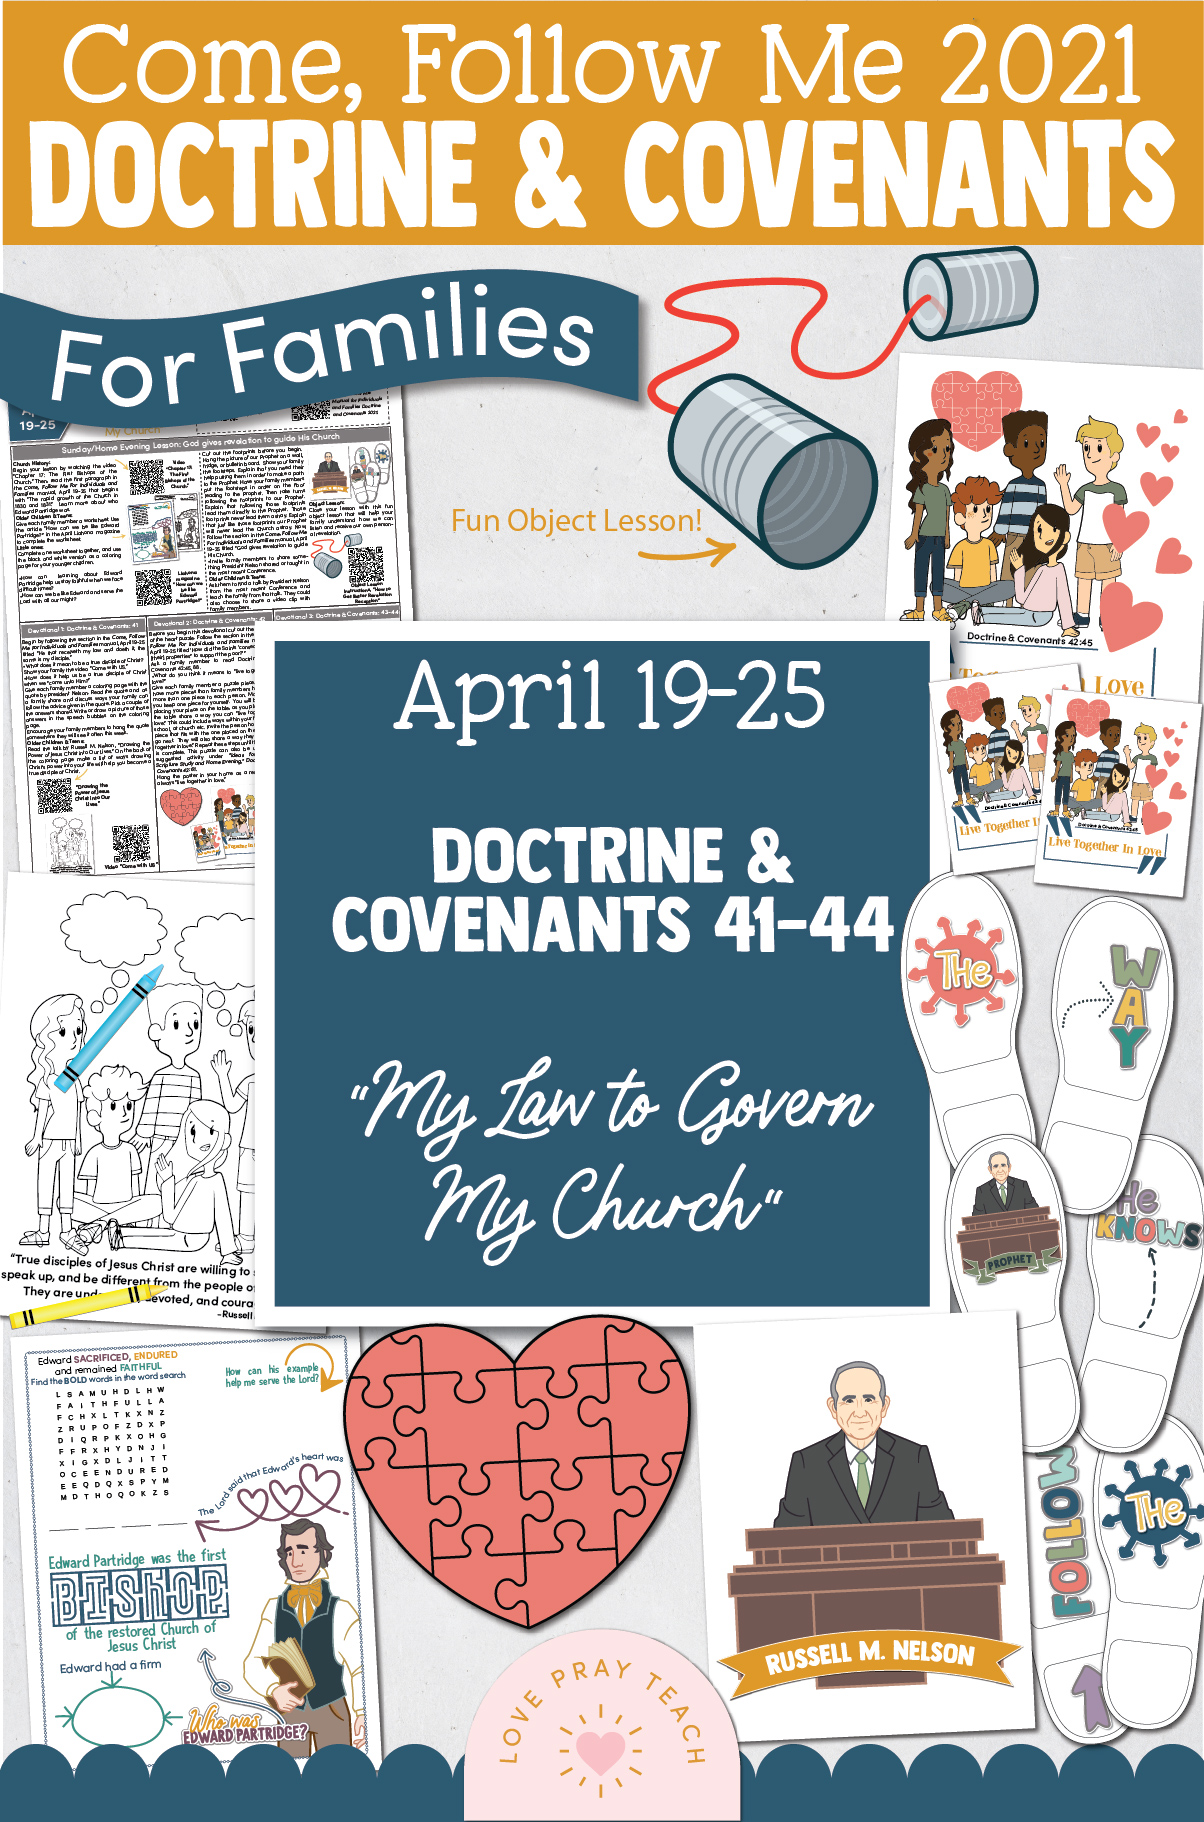 "Come, Follow Me—For Individuals and Families: Doctrine And Covenants 2021, April Week 4 Doctrine and Covenants 41-44: April 19-25,""My Law to Govern My Church"""